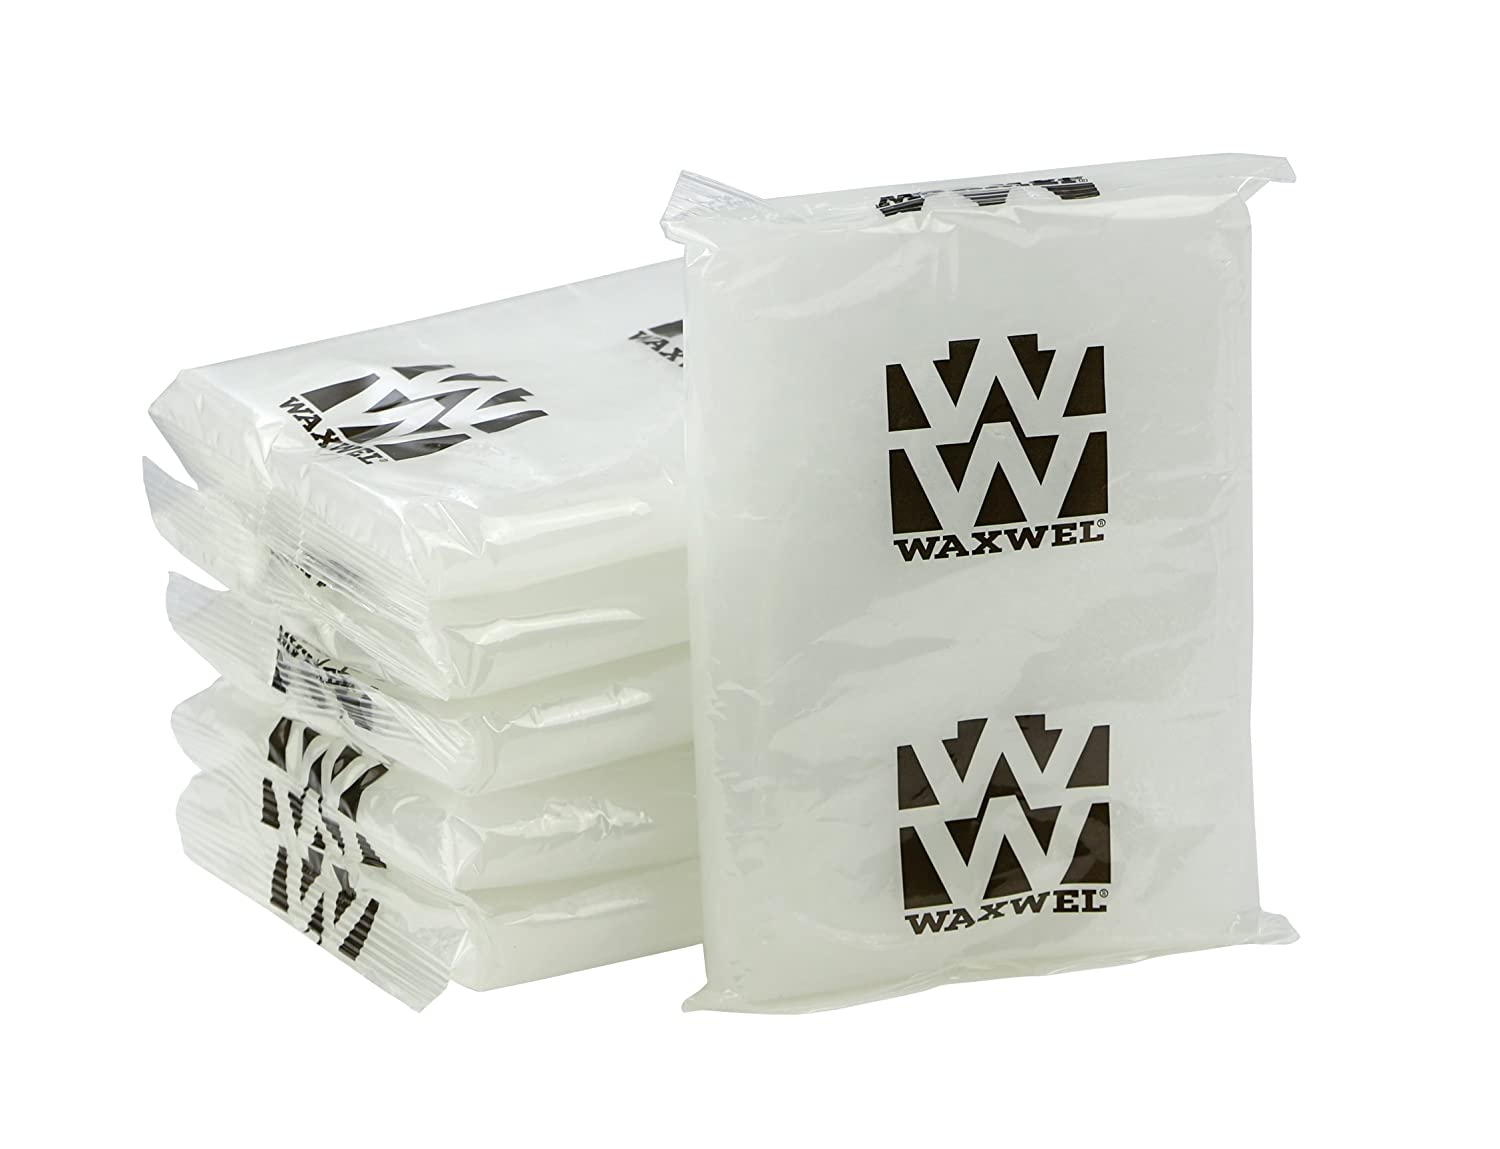 WaxWel Paraffin Bath Refill Wax Blocks, 6 lb Box, Wintergreen 11-1722-6